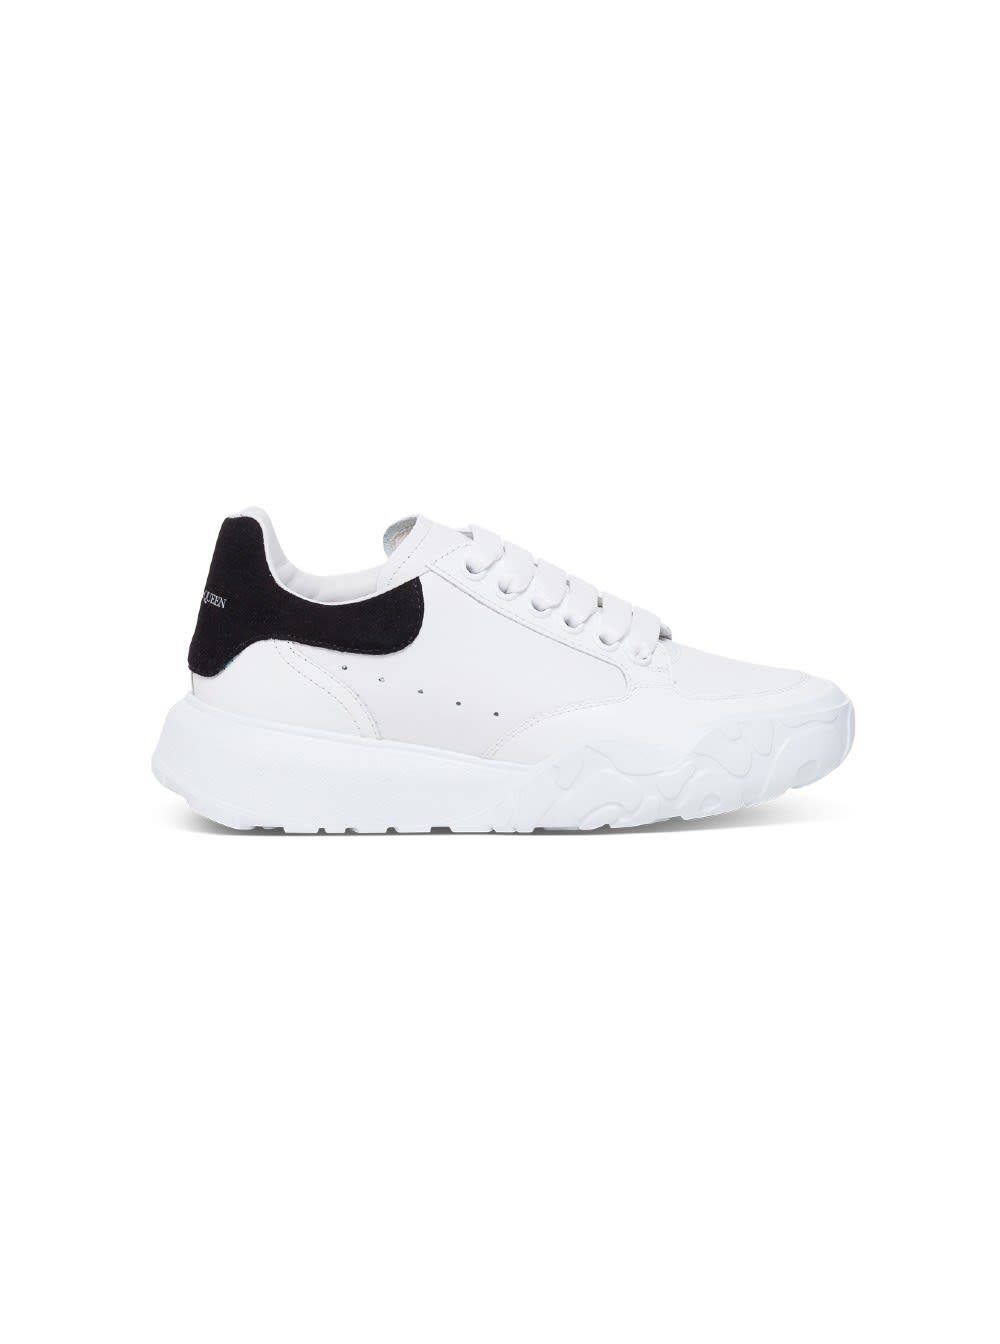 Alexander McQueen Oversize Sneakers In White Leather